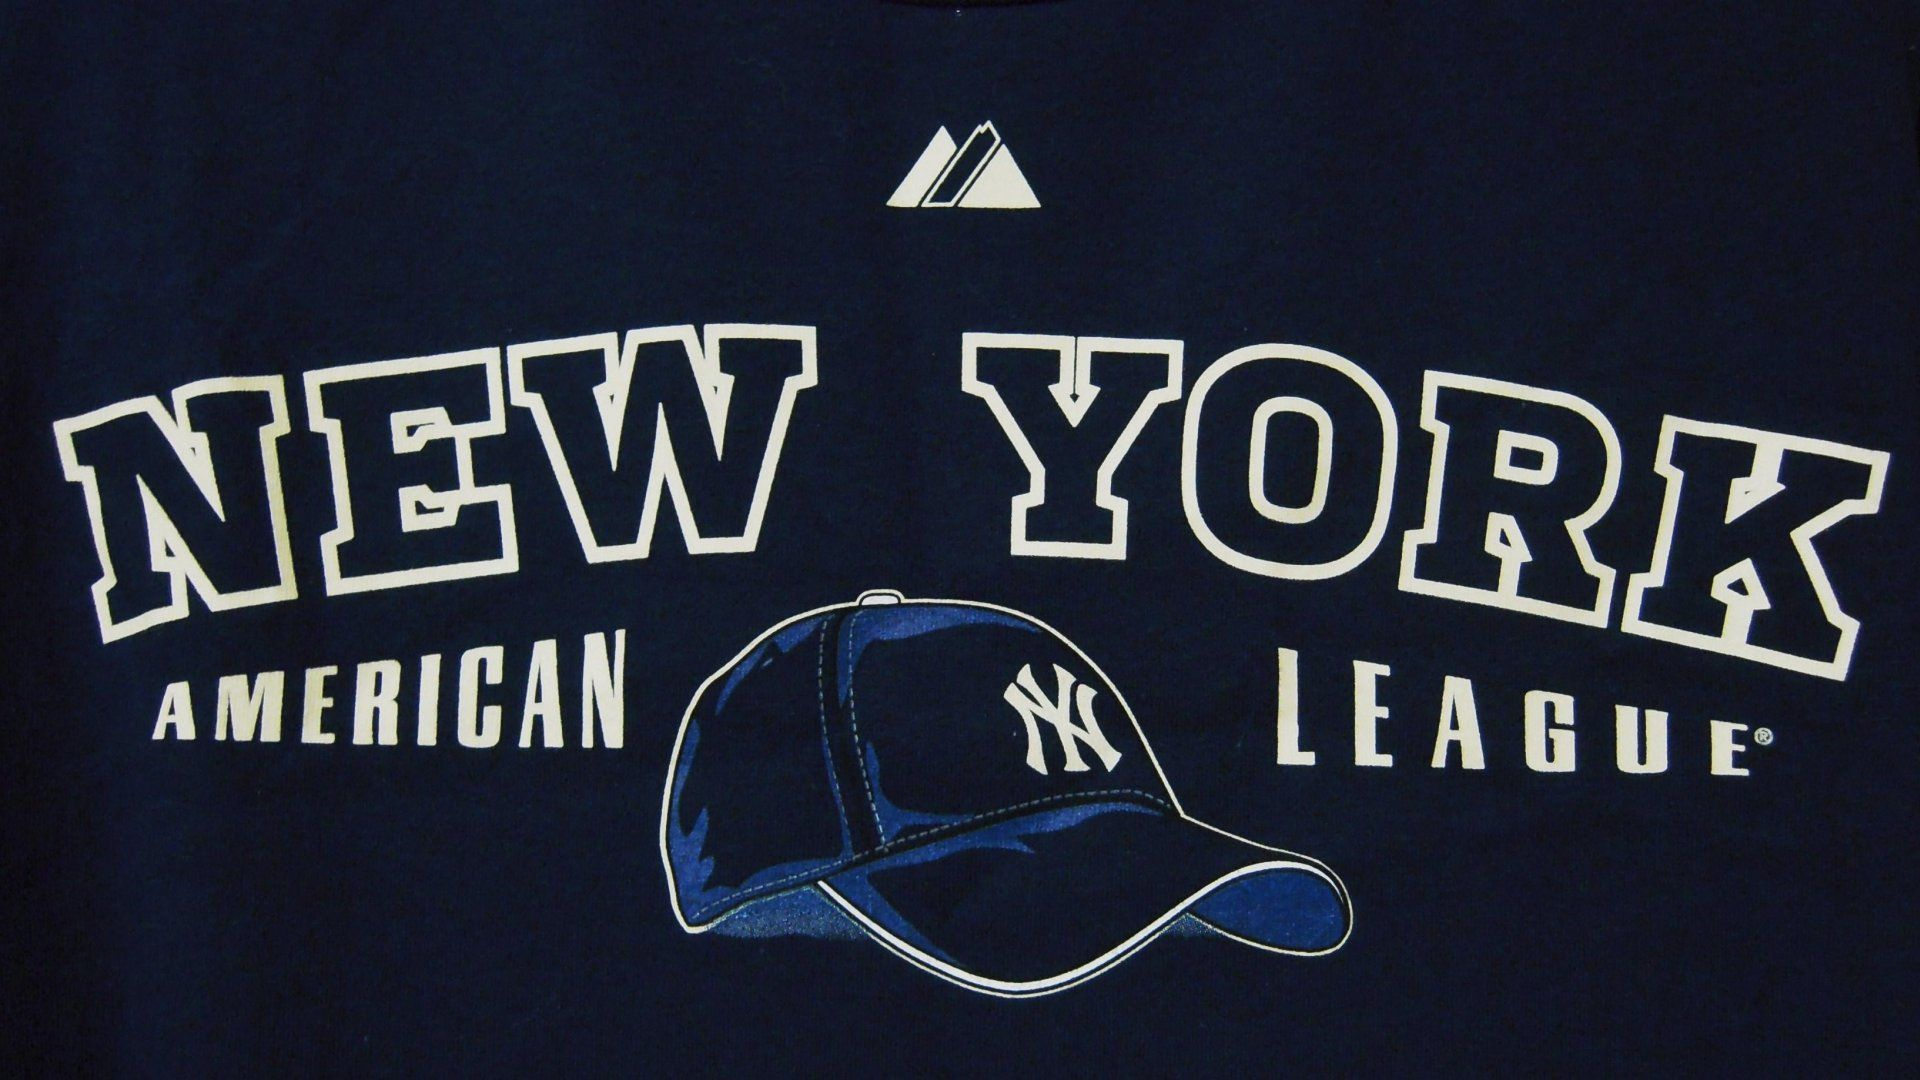 18 New York Yankees Wallpapers Wallpaperboat